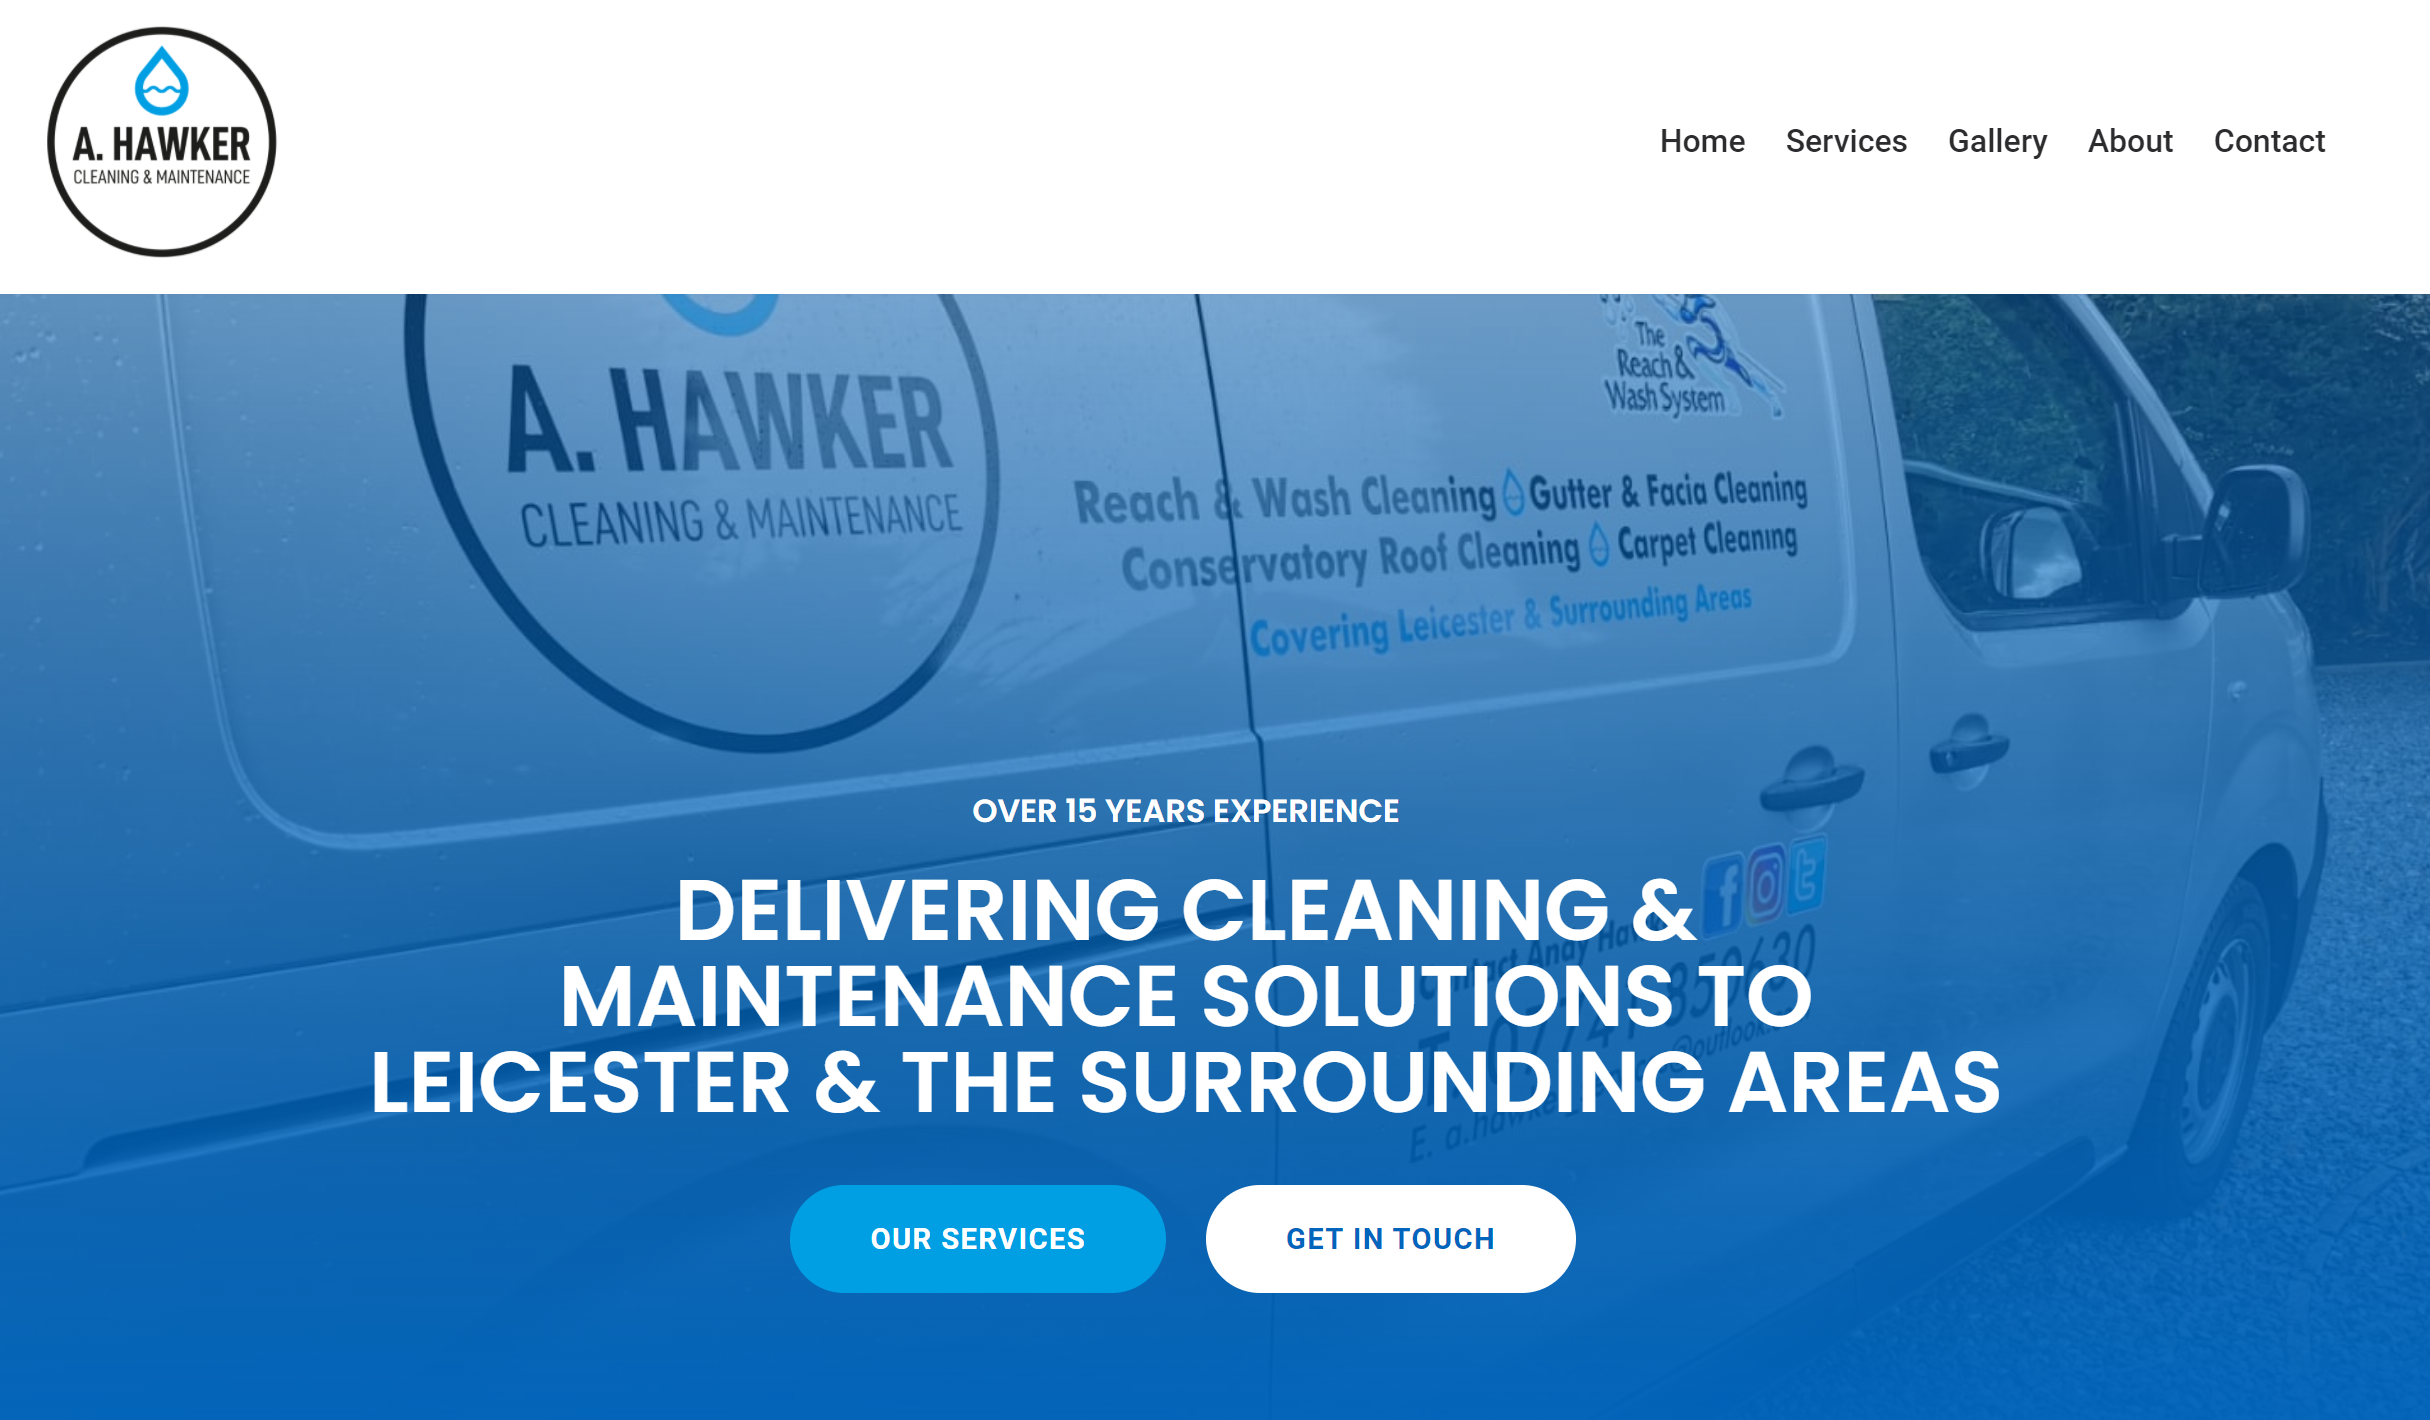 A. Hawker Cleaning & Maintenance